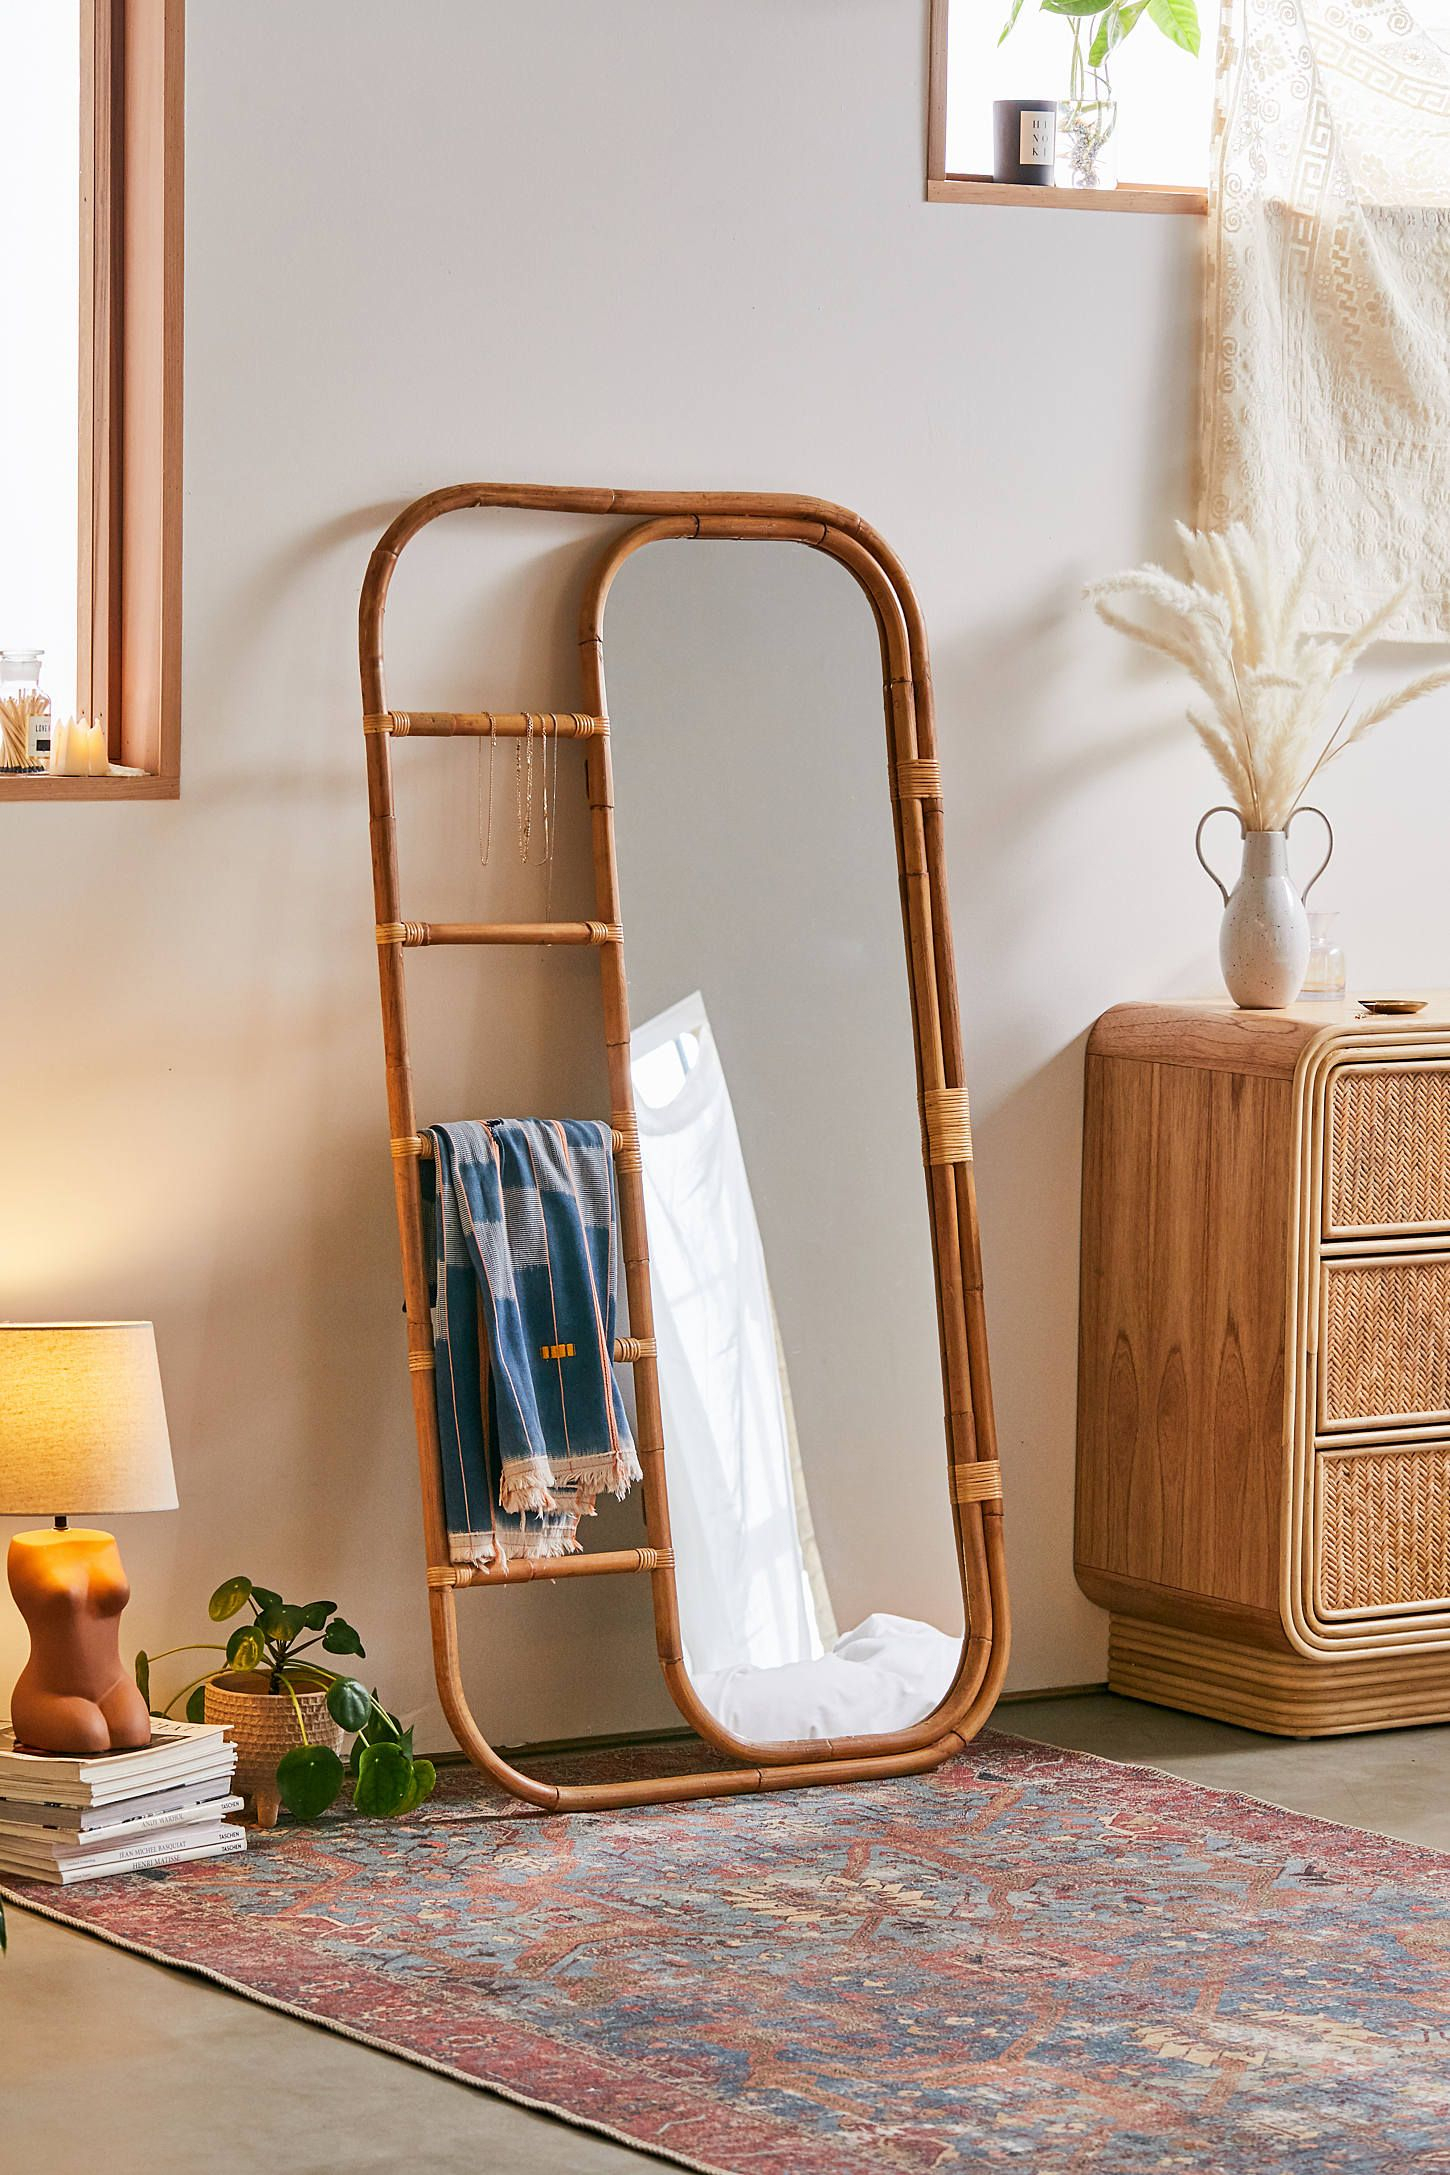 10 Standing Mirrors Under $200 – Cheap Full Length And Floor Inside Northcutt Accent Mirrors (View 17 of 30)